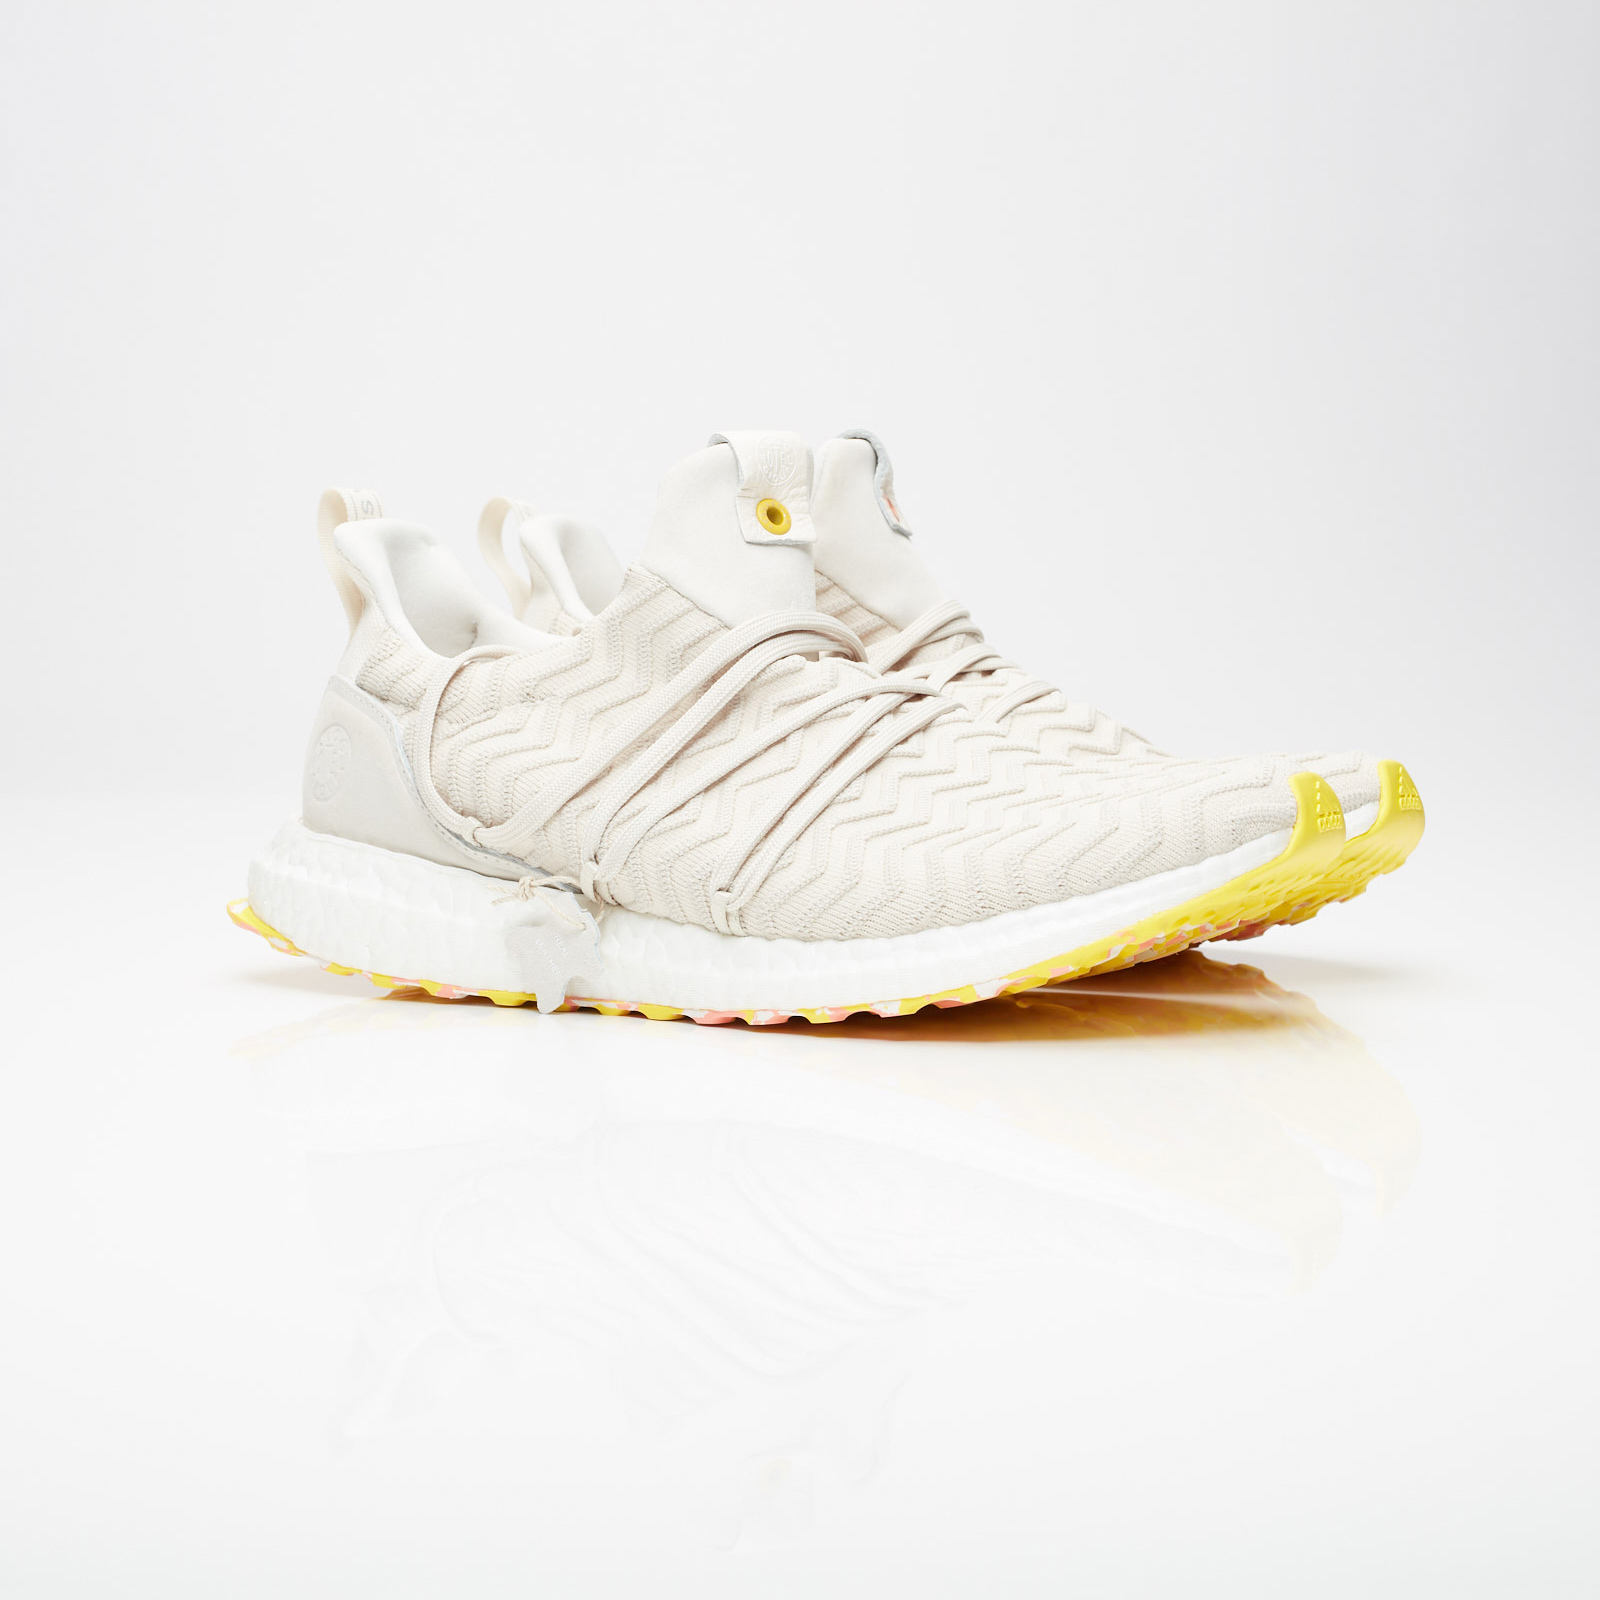 01-adidas-ultra-boost-consortium-a-kind-of-guise-bb7370